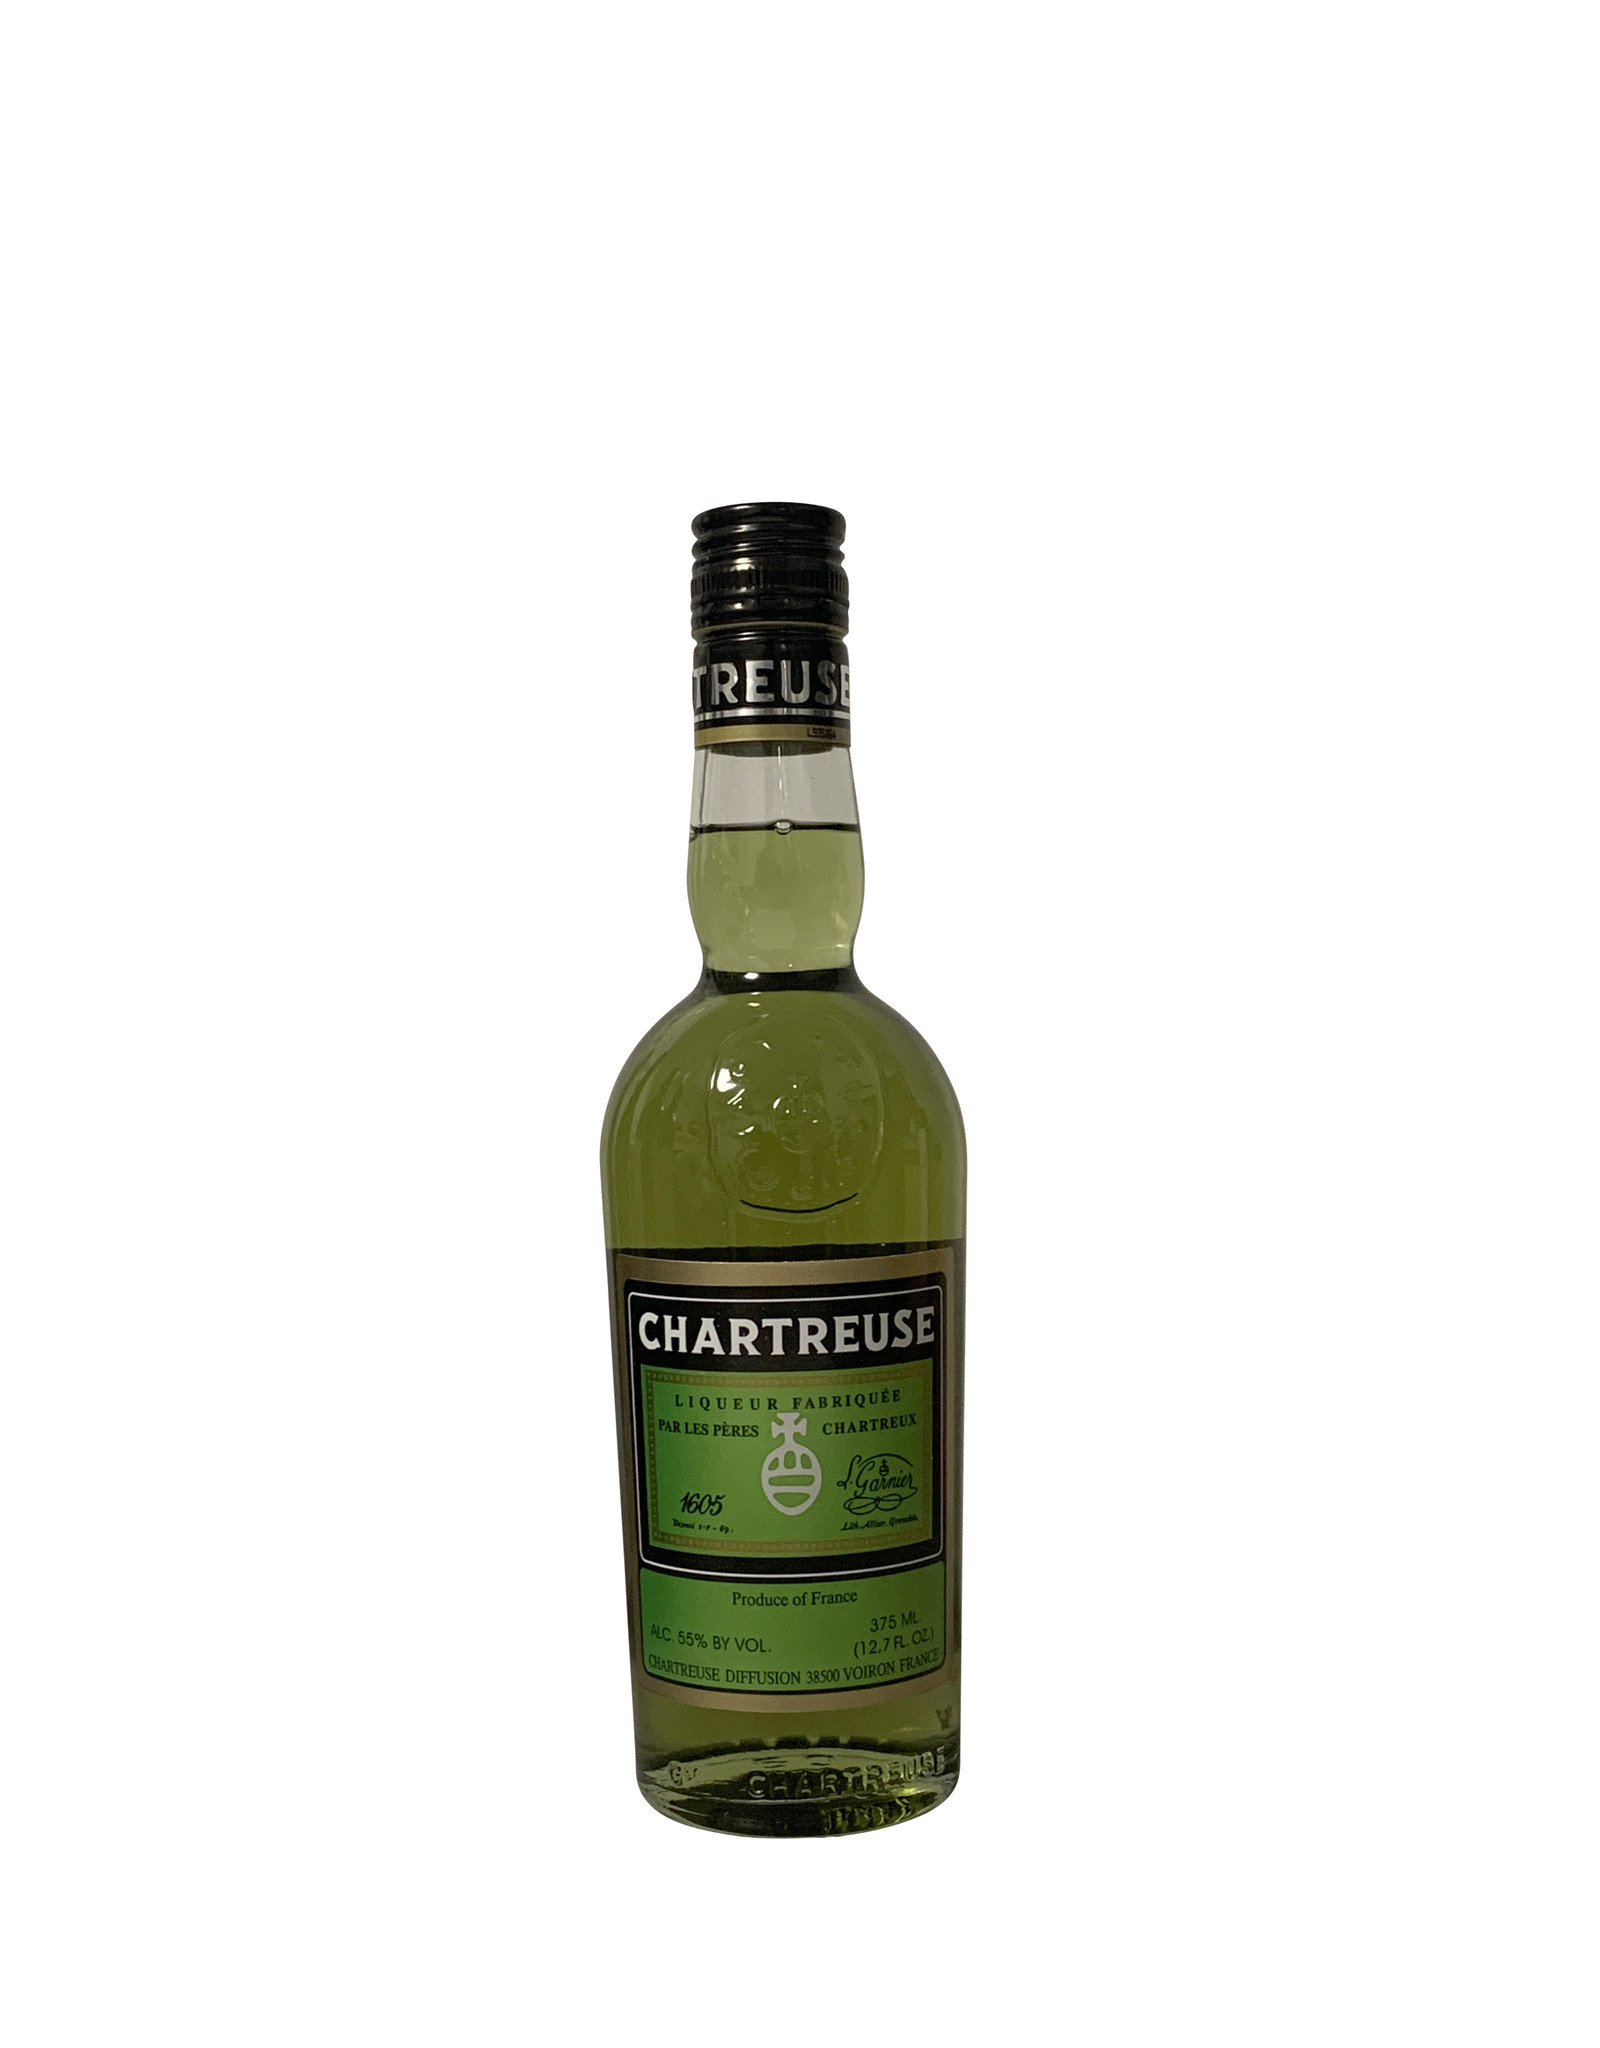 Chartreuse Green, Voiron, France (375mL)